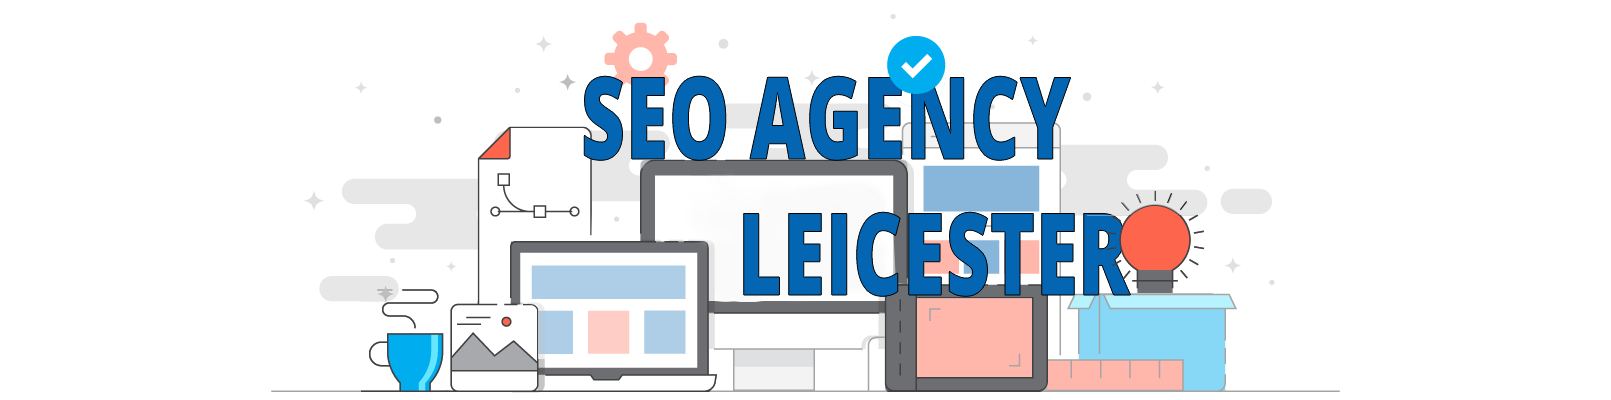 seek social seo agency leicester header with transparent background